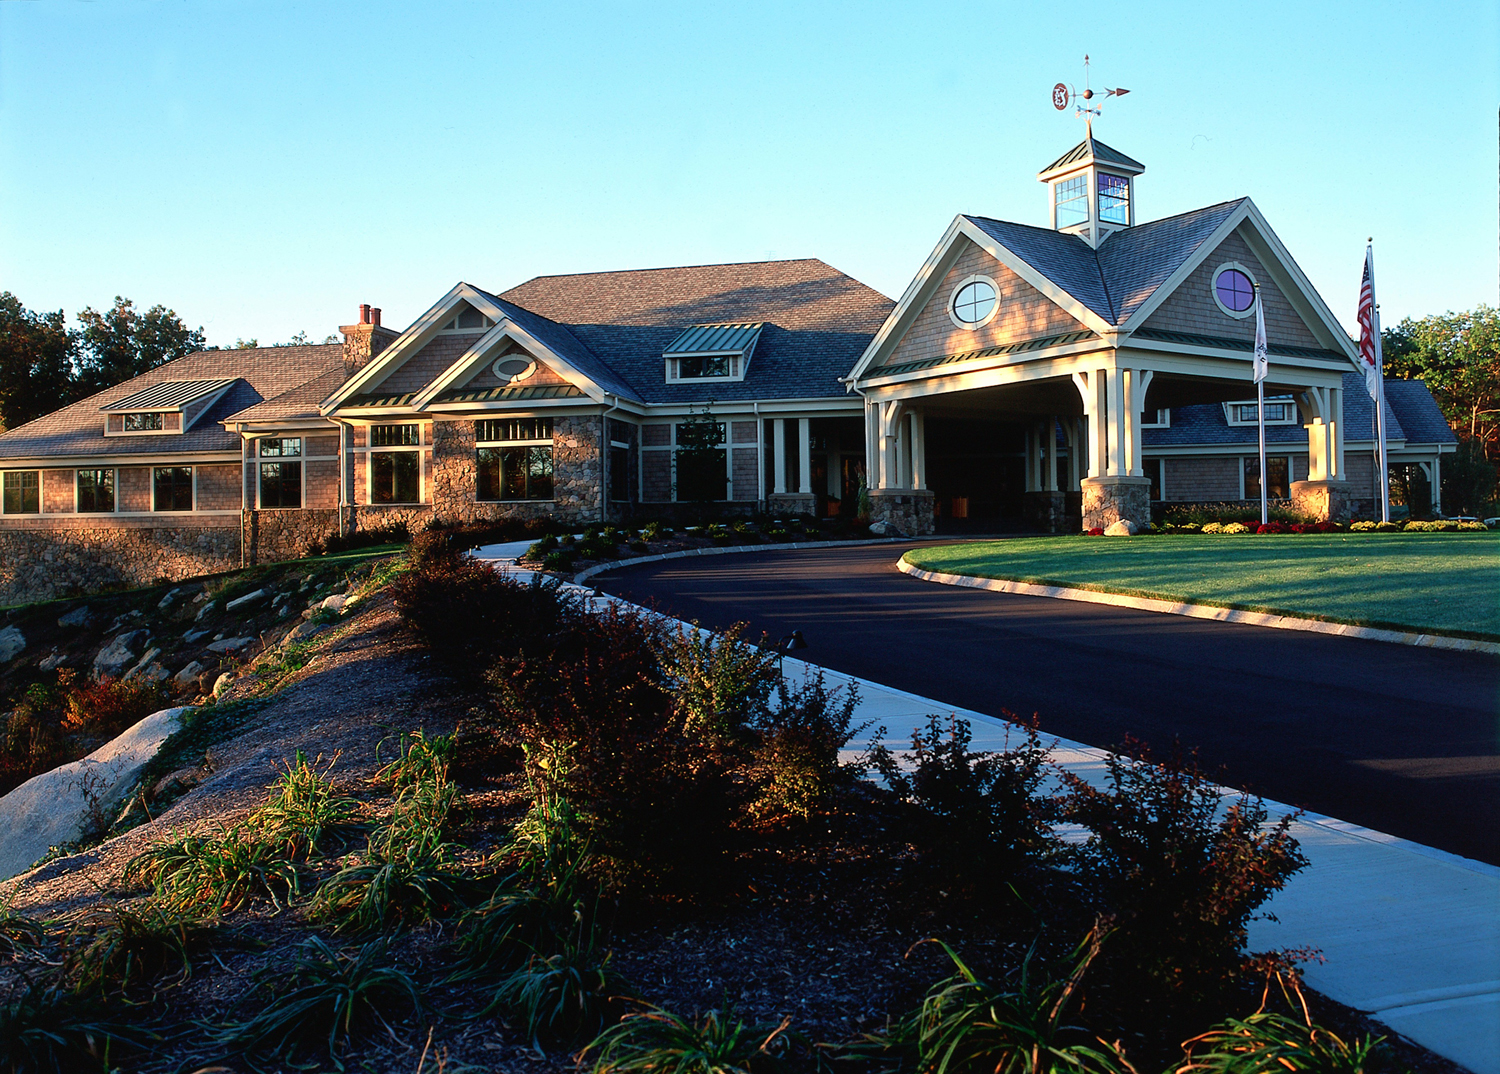 TPC Boston golf clubhouse constructed by RCS